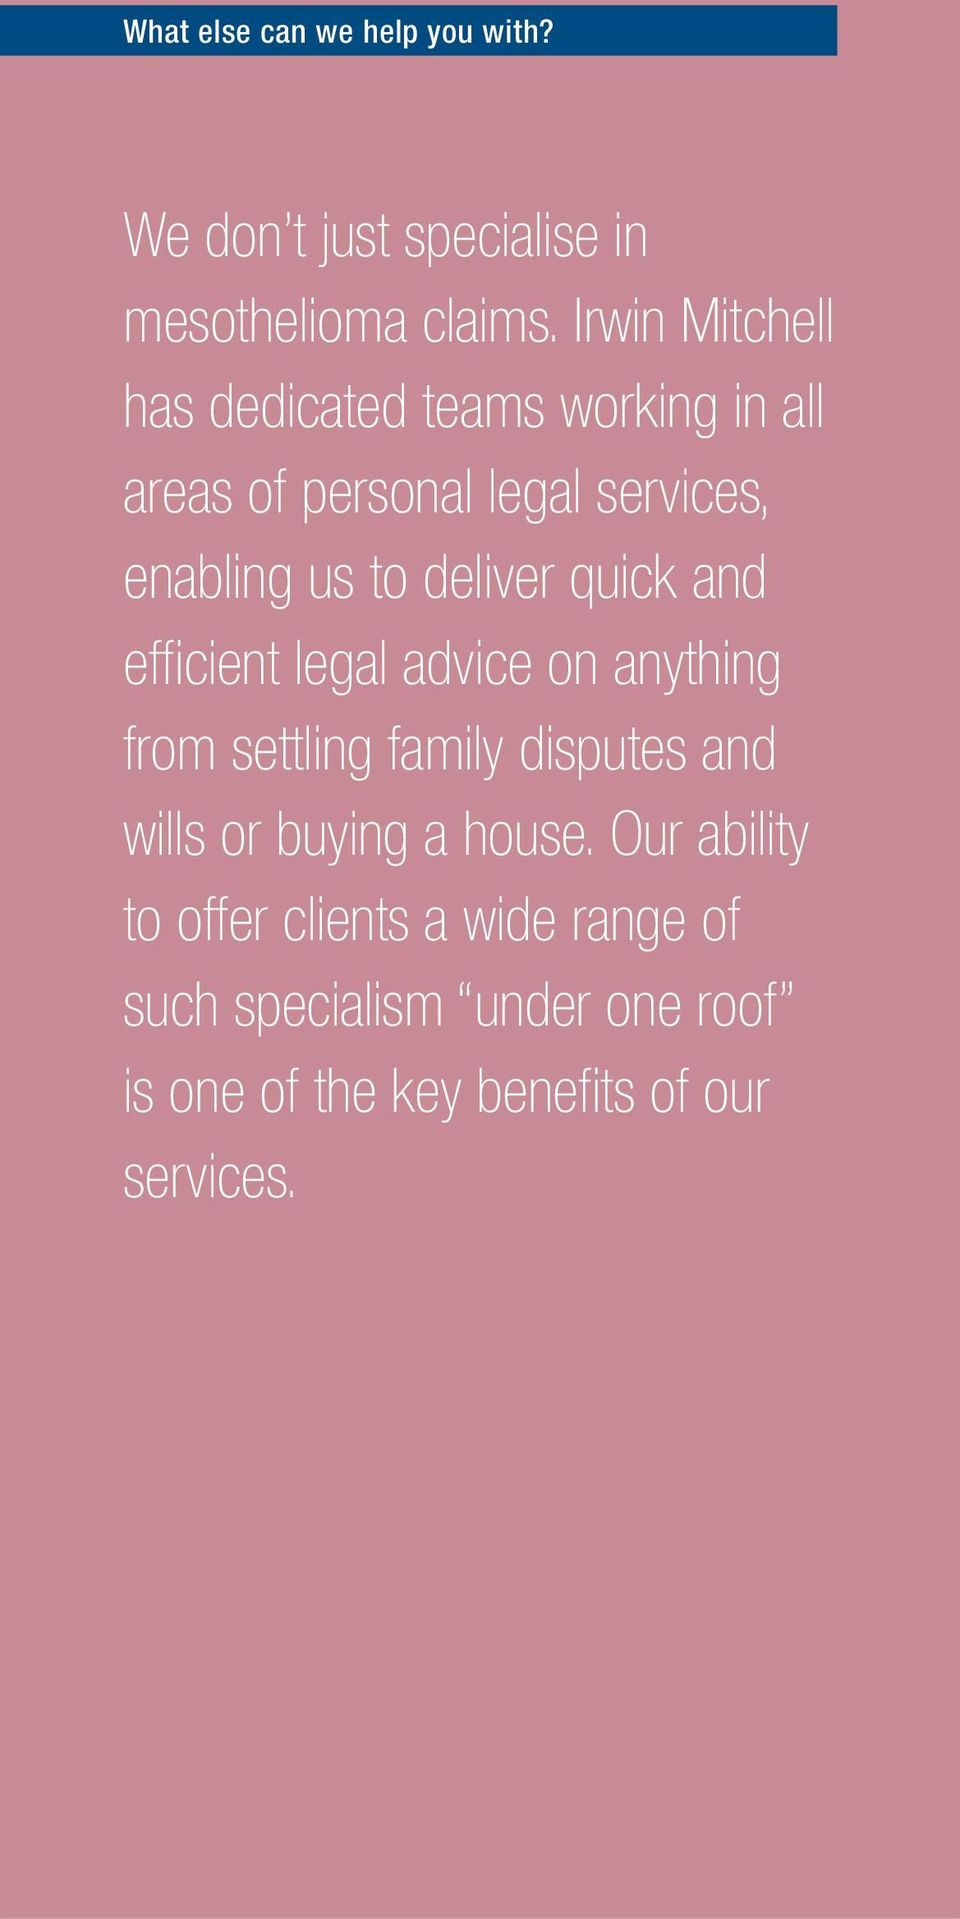 deliver quick and efficient legal advice on anything from settling family disputes and wills or buying